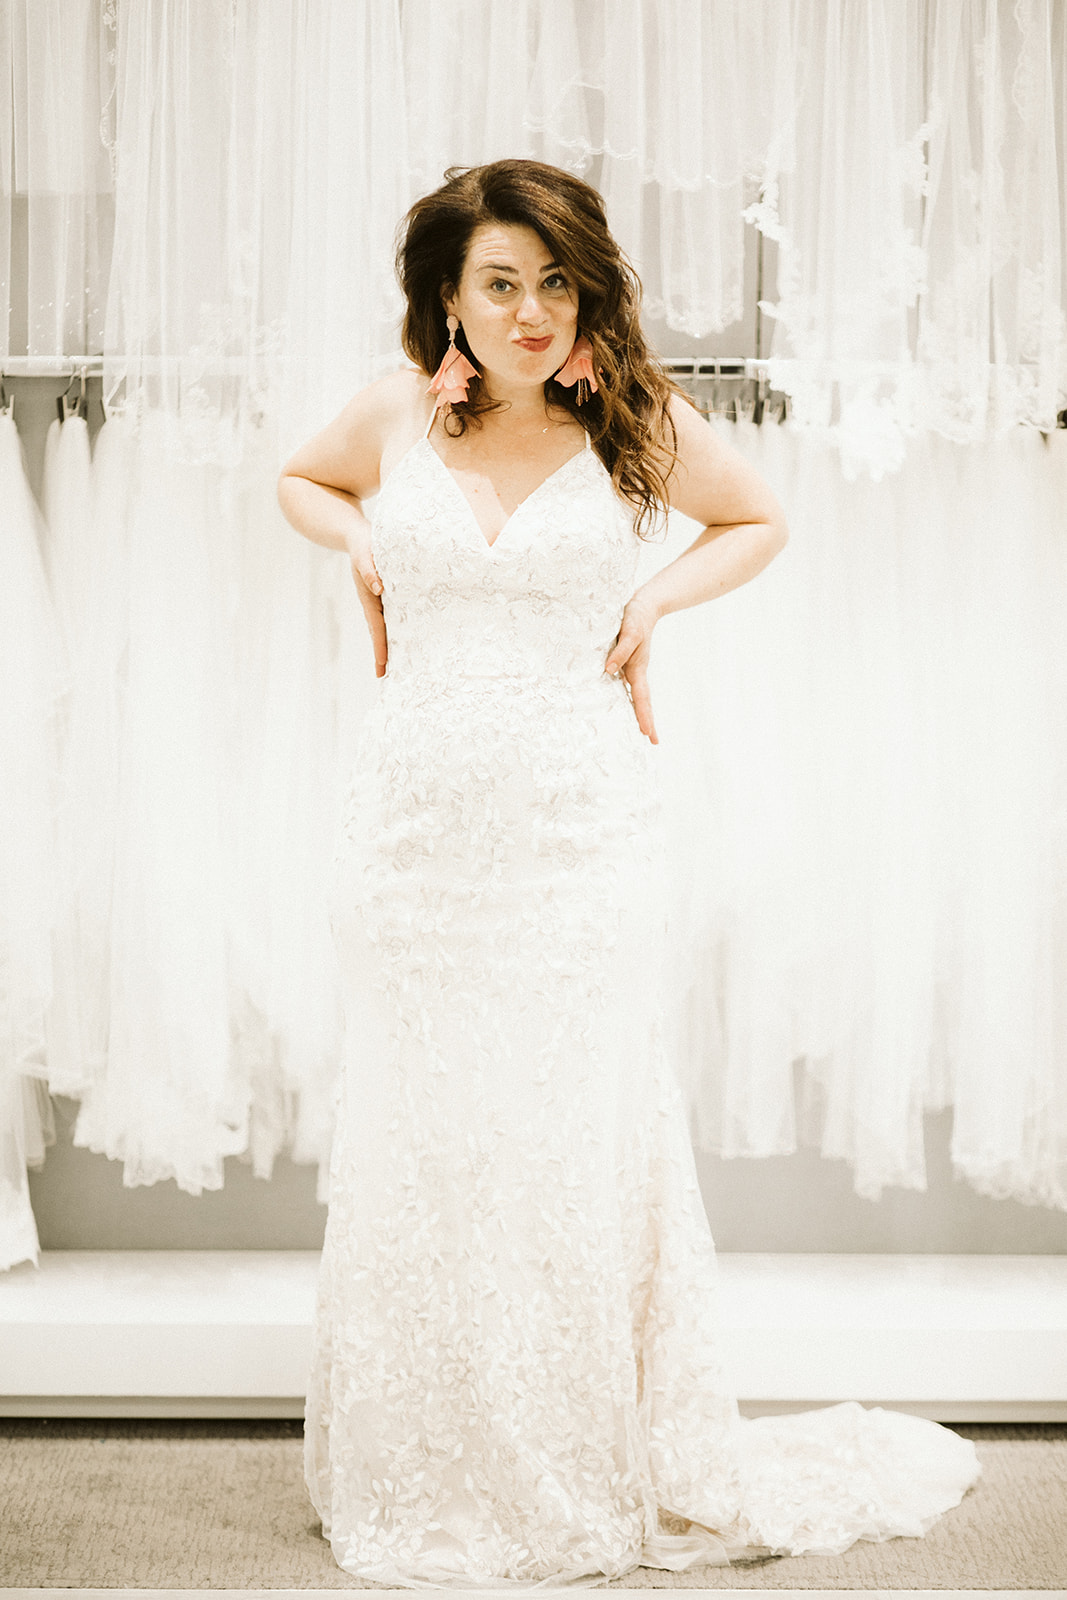 A woman with long brown hair stands with her hands on her hips and purses her lips while wearing a spaghetti-strap lace gown at David's Bridal